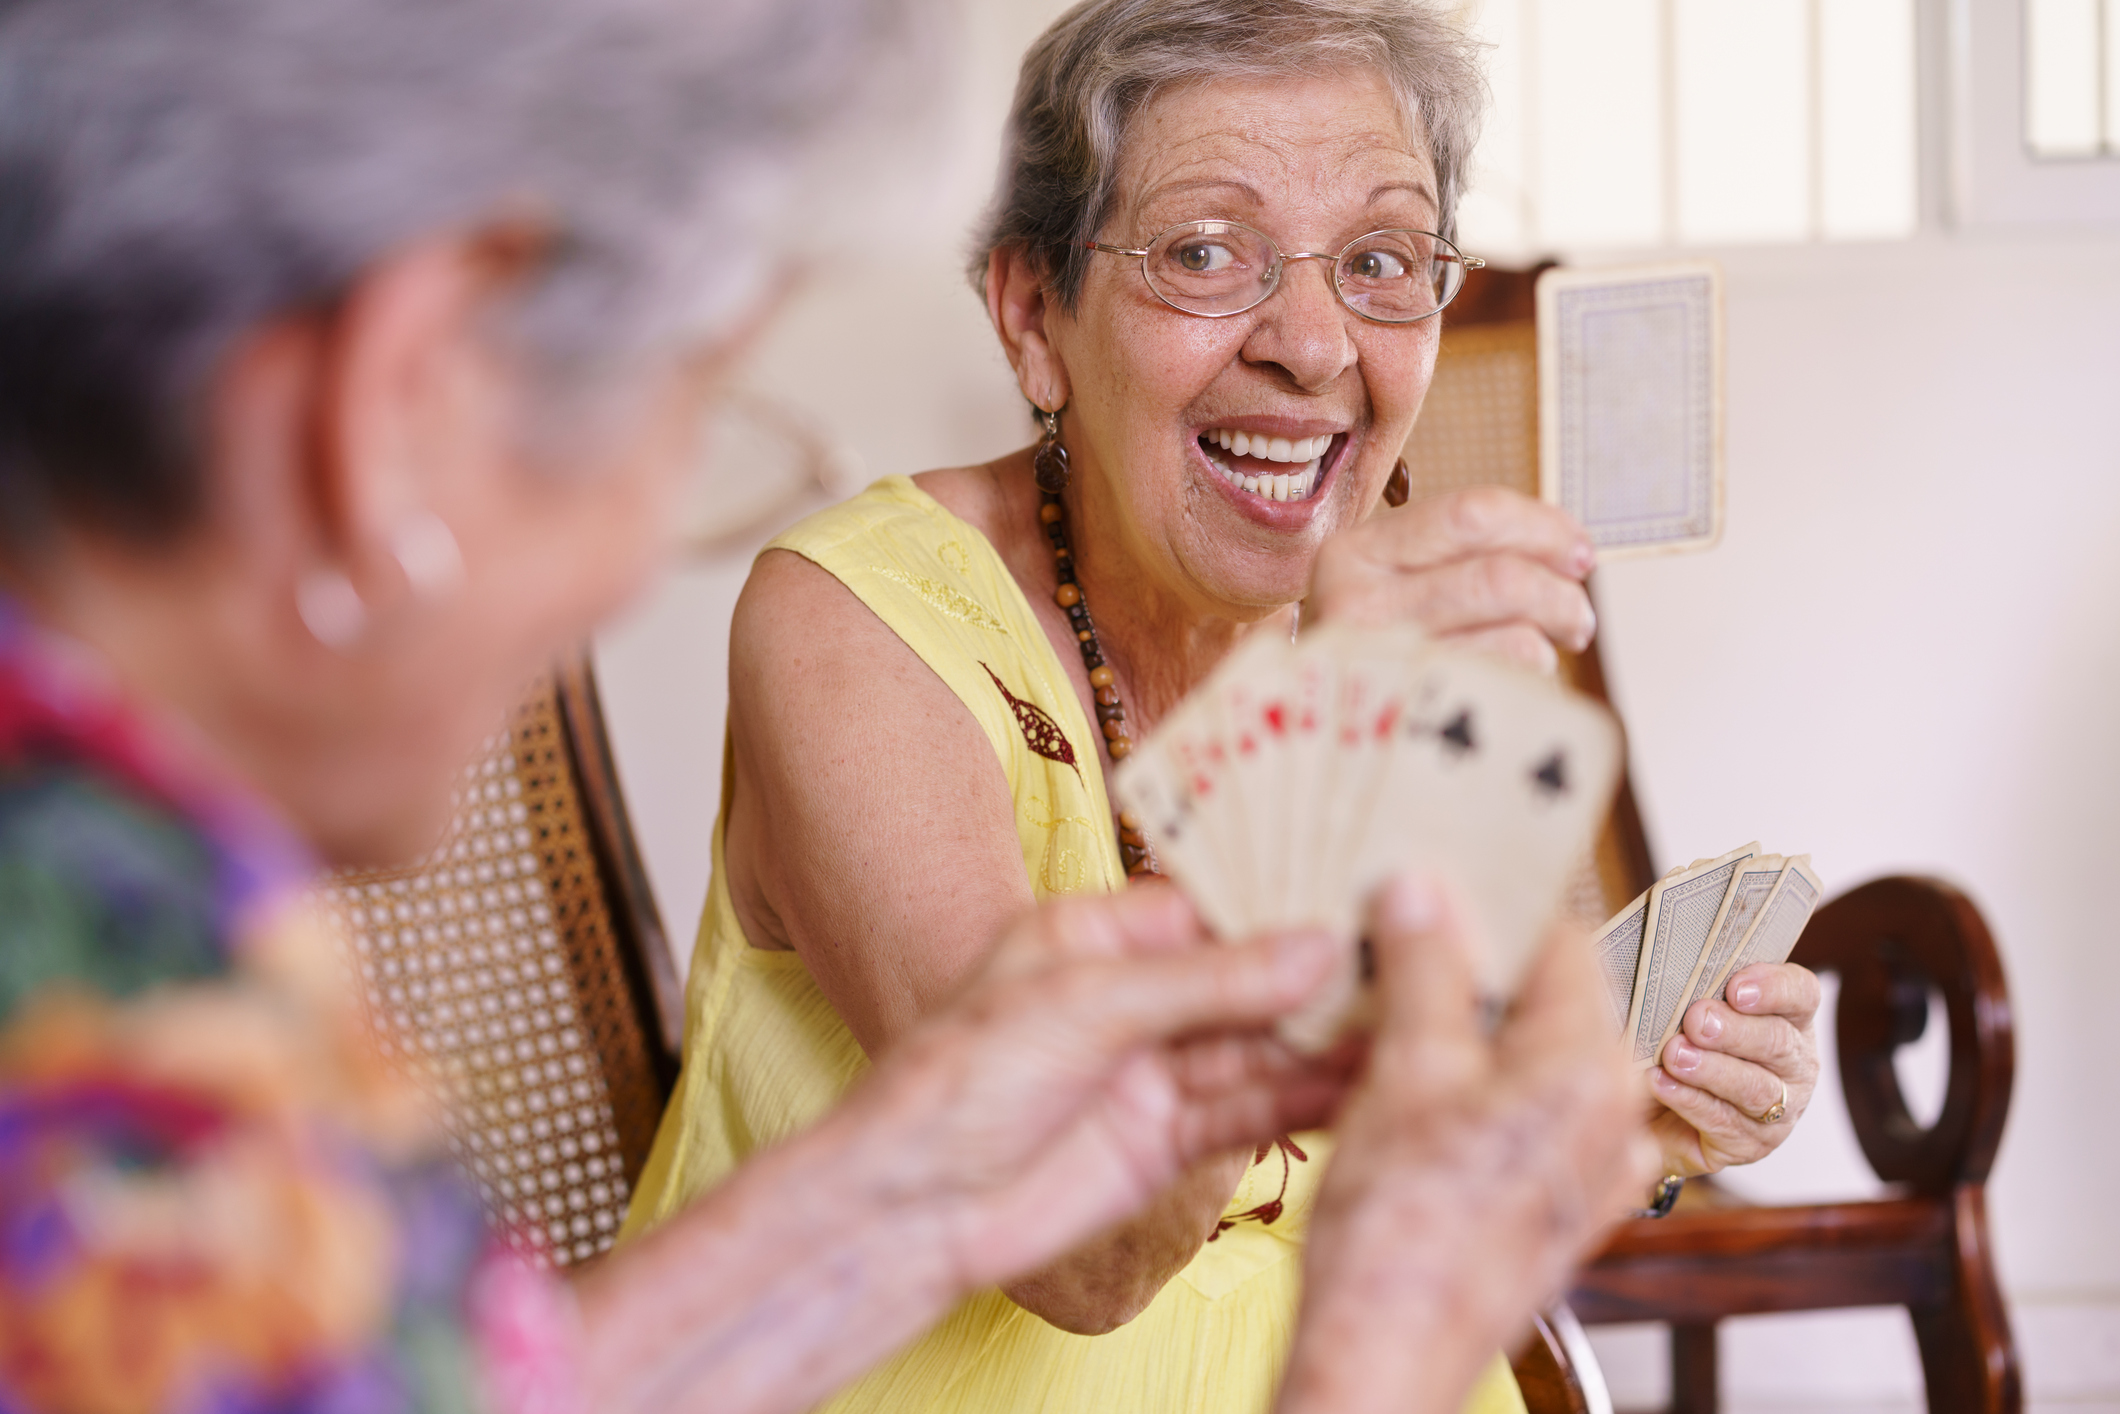 Adult day care benefits seniors by providing socialization opportunities, like these two senior women enjoying a game of cards.